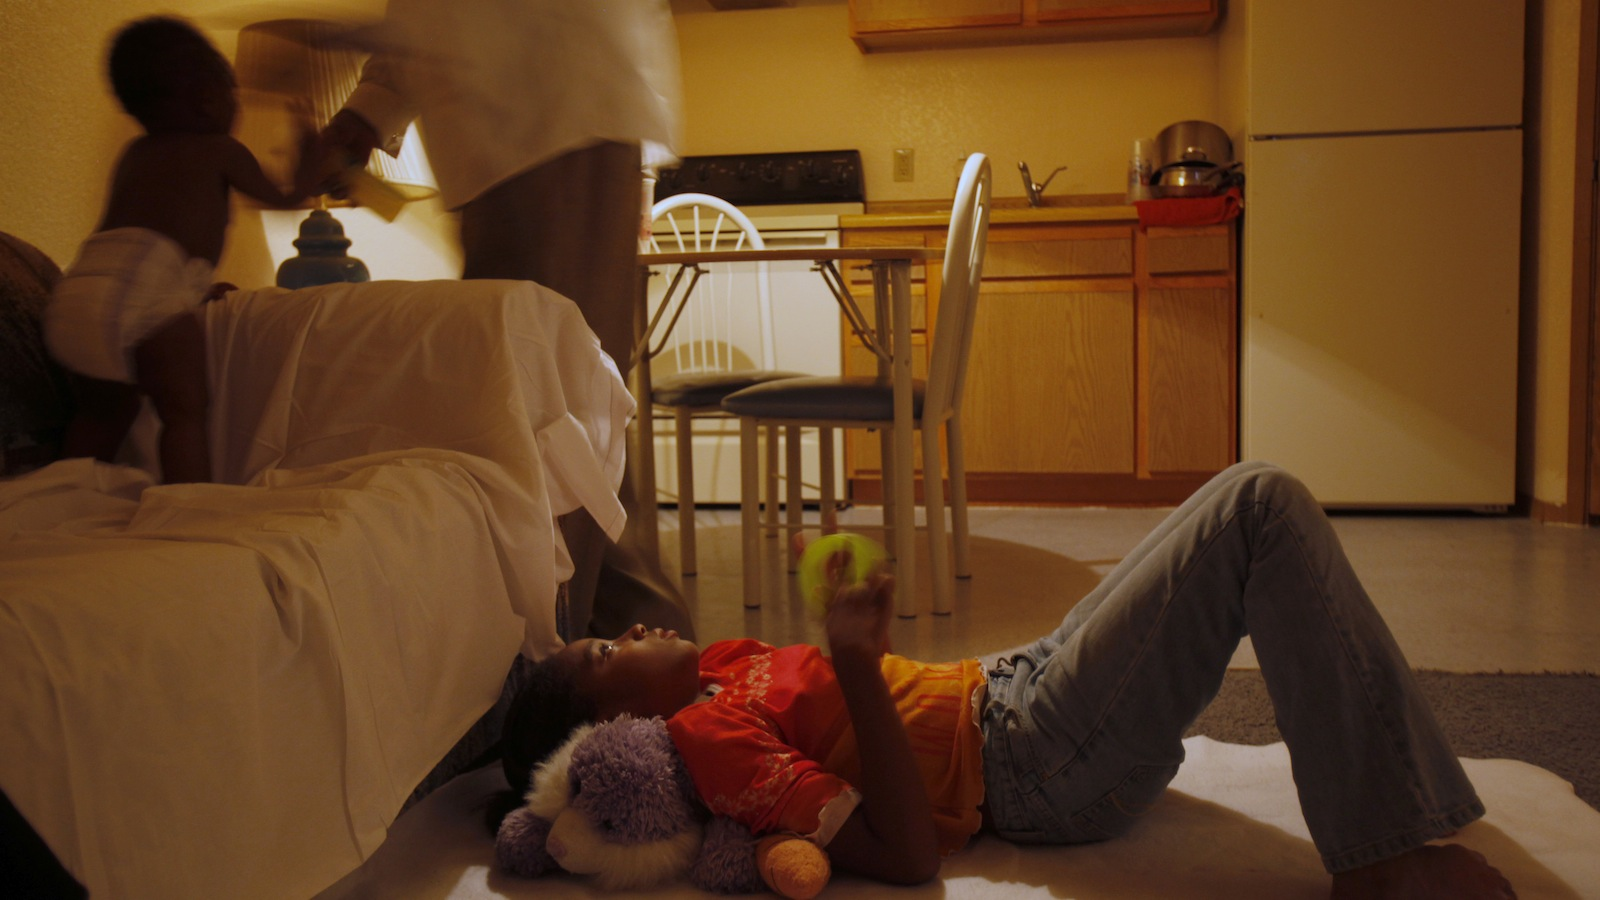 Frederick Wilson, (C), puts his eleven month old granddaughter, Keziah Bradley, to bed on the couch as his niece, Kayla Miles, 12, lays on the floor where she will sleep inside the motel room the where the family is living in Grand Prairie, Texas June 30, 2009.  This is the first night the family has had sheets to sleep on after it was brought to the attention of the Urban League, who is paying for the room, that the motel charged extra for sheets. After much discussion the Urban League was able to convince the motel owners to provide sheets for the family. The Wilson family moved to Texas after losing their jobs and their home in Minnesota. They ended up in a homeless shelter and through assistance with the National Urban League were able to find jobs, the Urban League has been paying for temporary housing in a motel as they work to get back on their feet. REUTERS/Jessica Rinaldi (UNITED STATES) - RTR25ECI